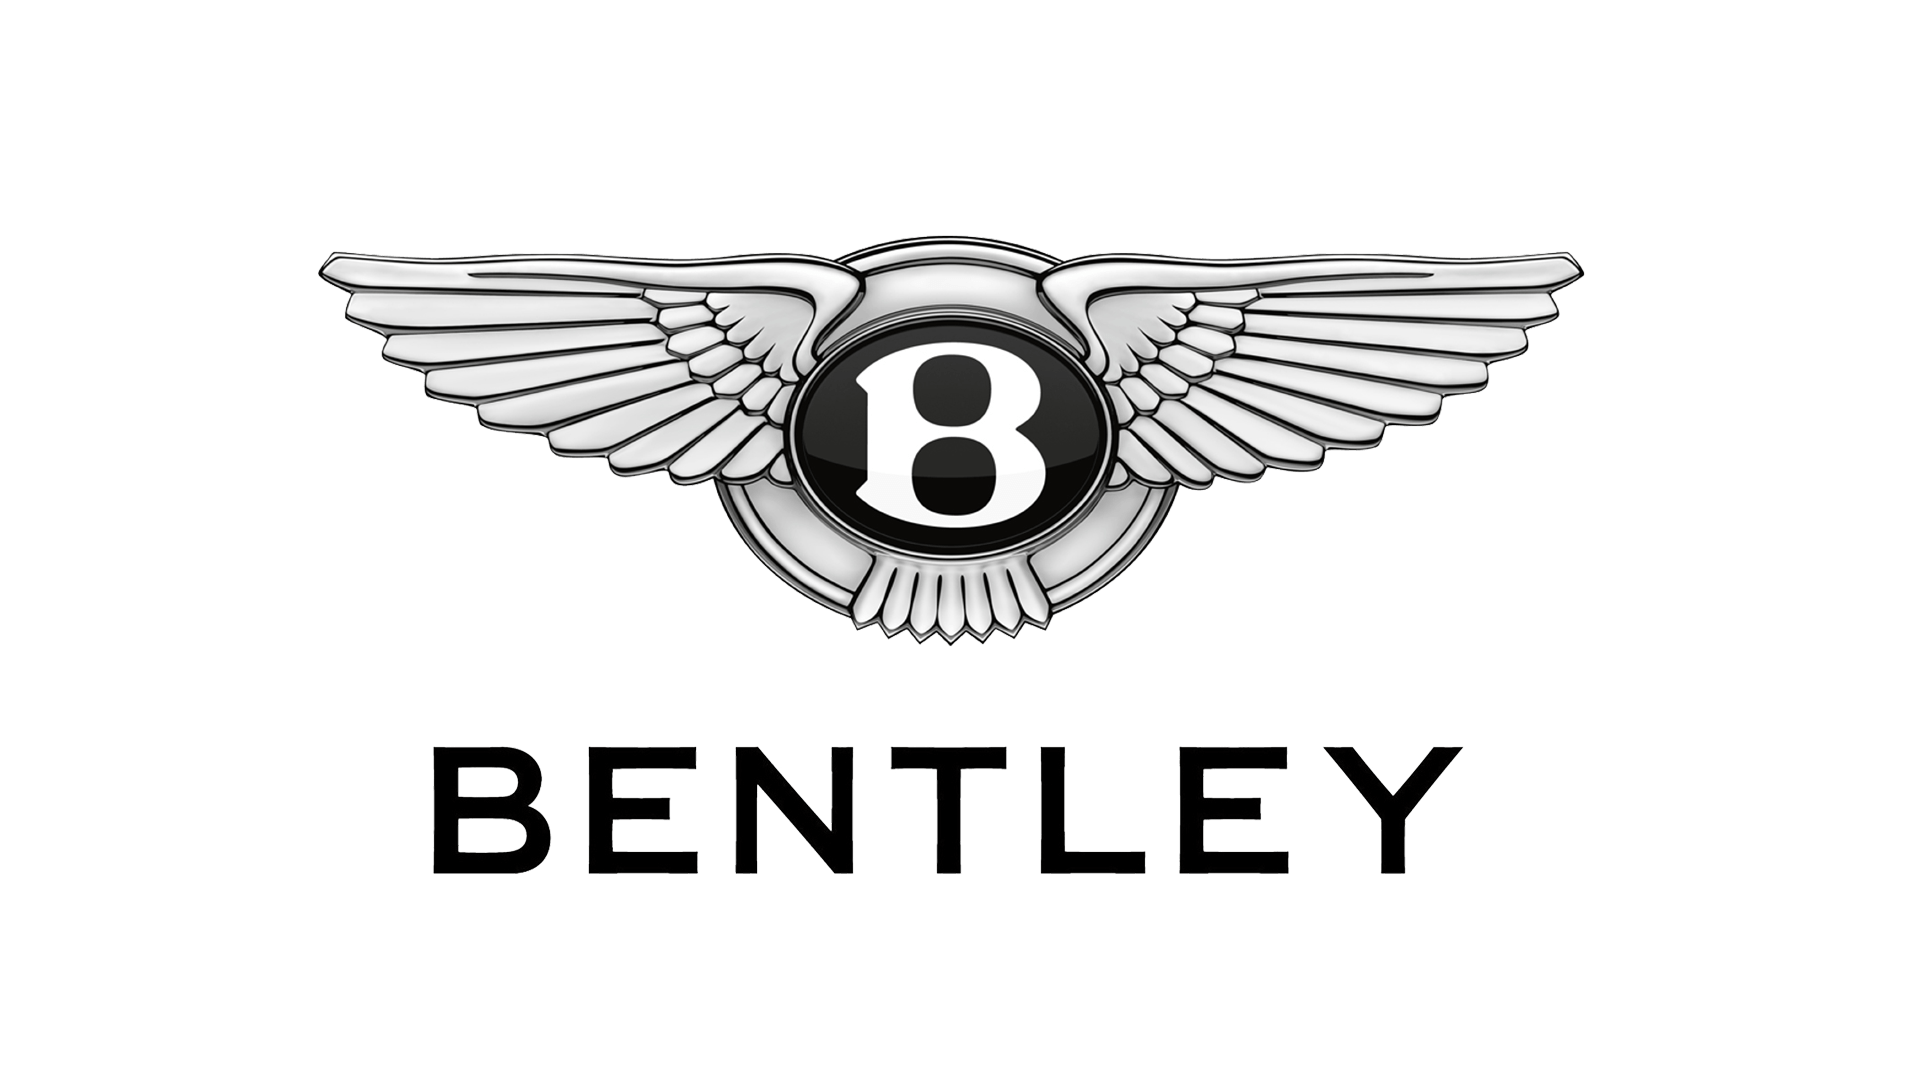 Image result for Bentley logo transparent background